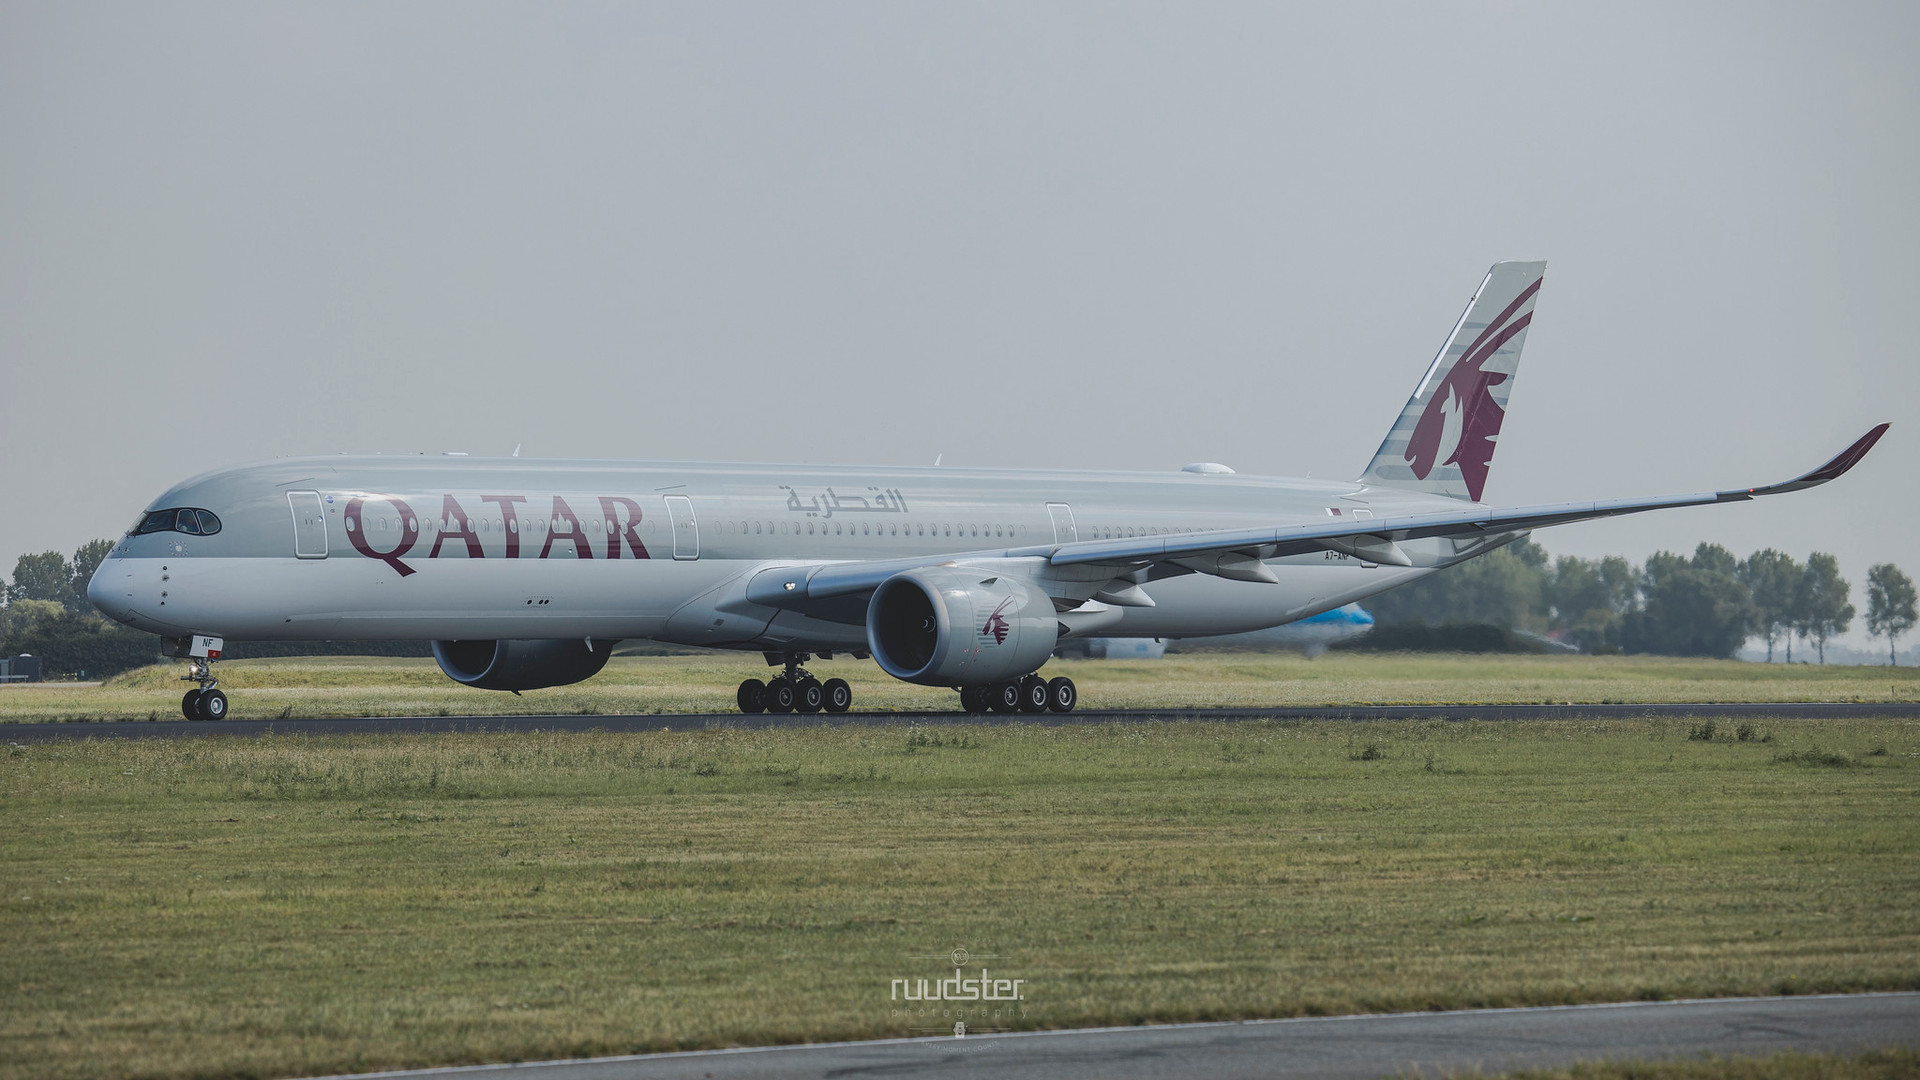 A7-ANF | Build: 2018 - Airbus A350-1041